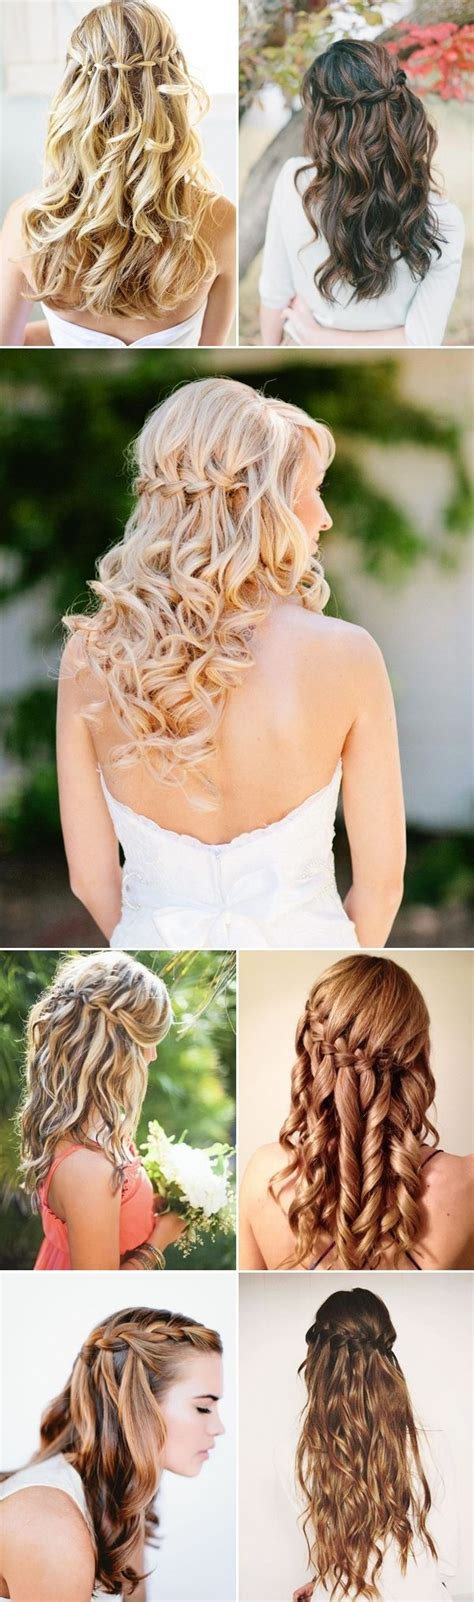 Wedding Hairstyles For Bridesmaids Braids by 30 Bridesmaid Hairstyles For Hair Popular